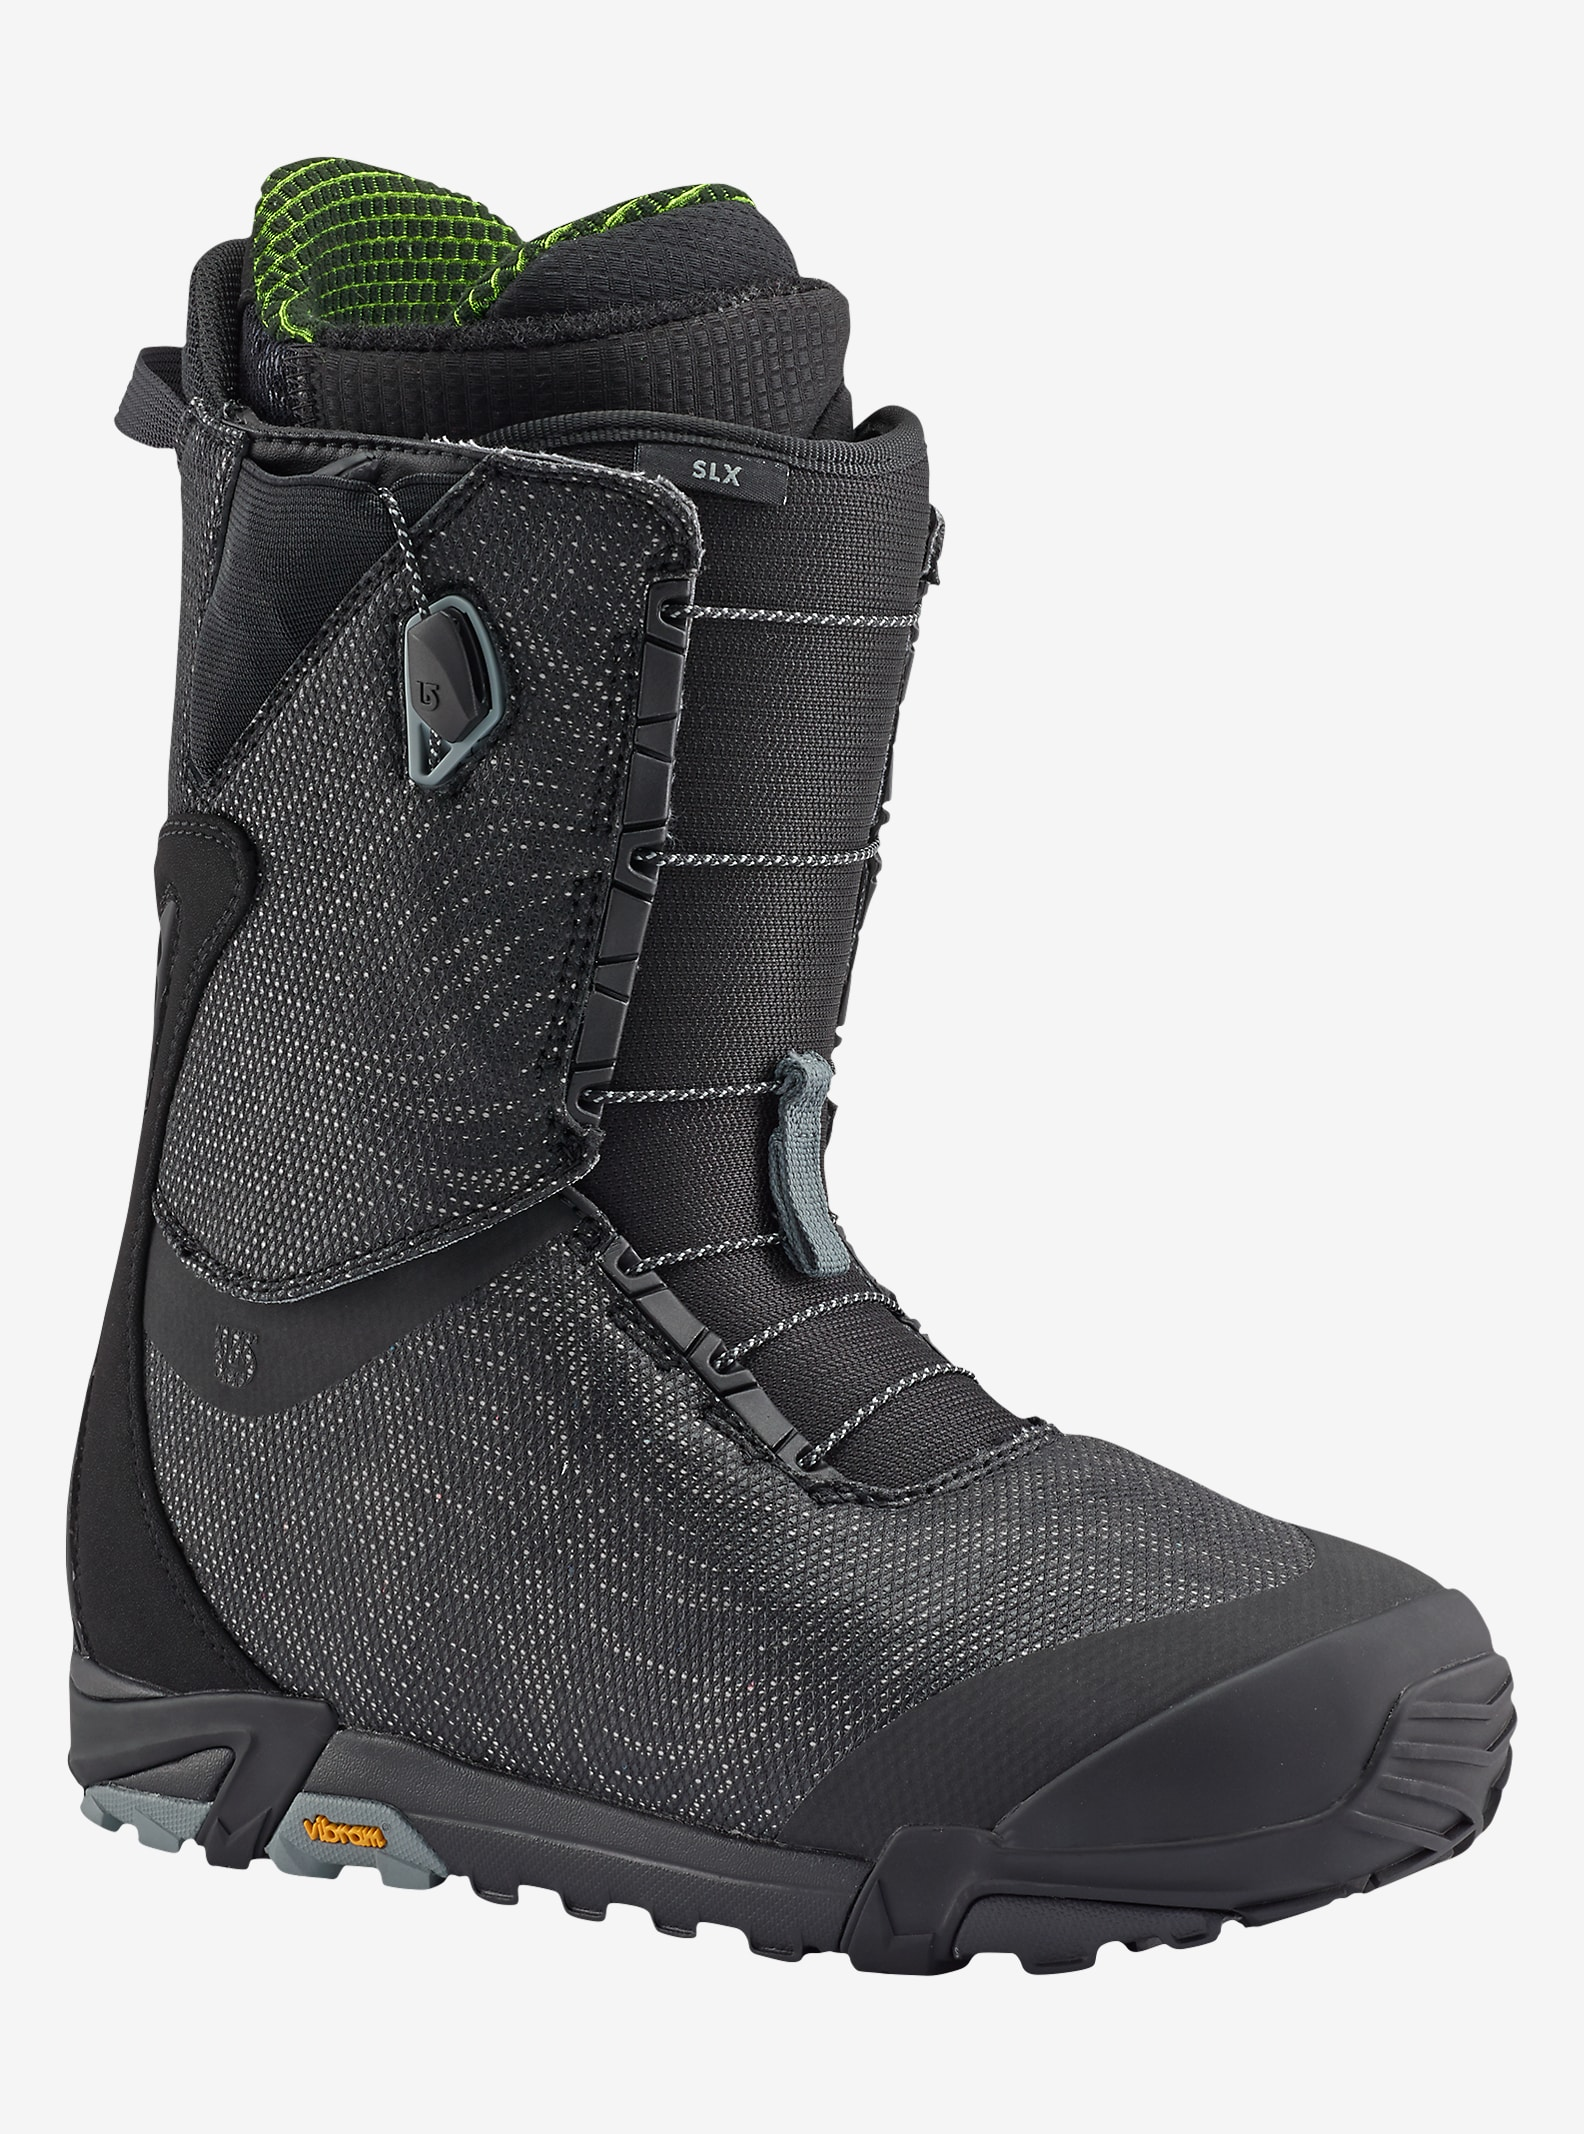 Burton SLX Snowboard Boot shown in Black